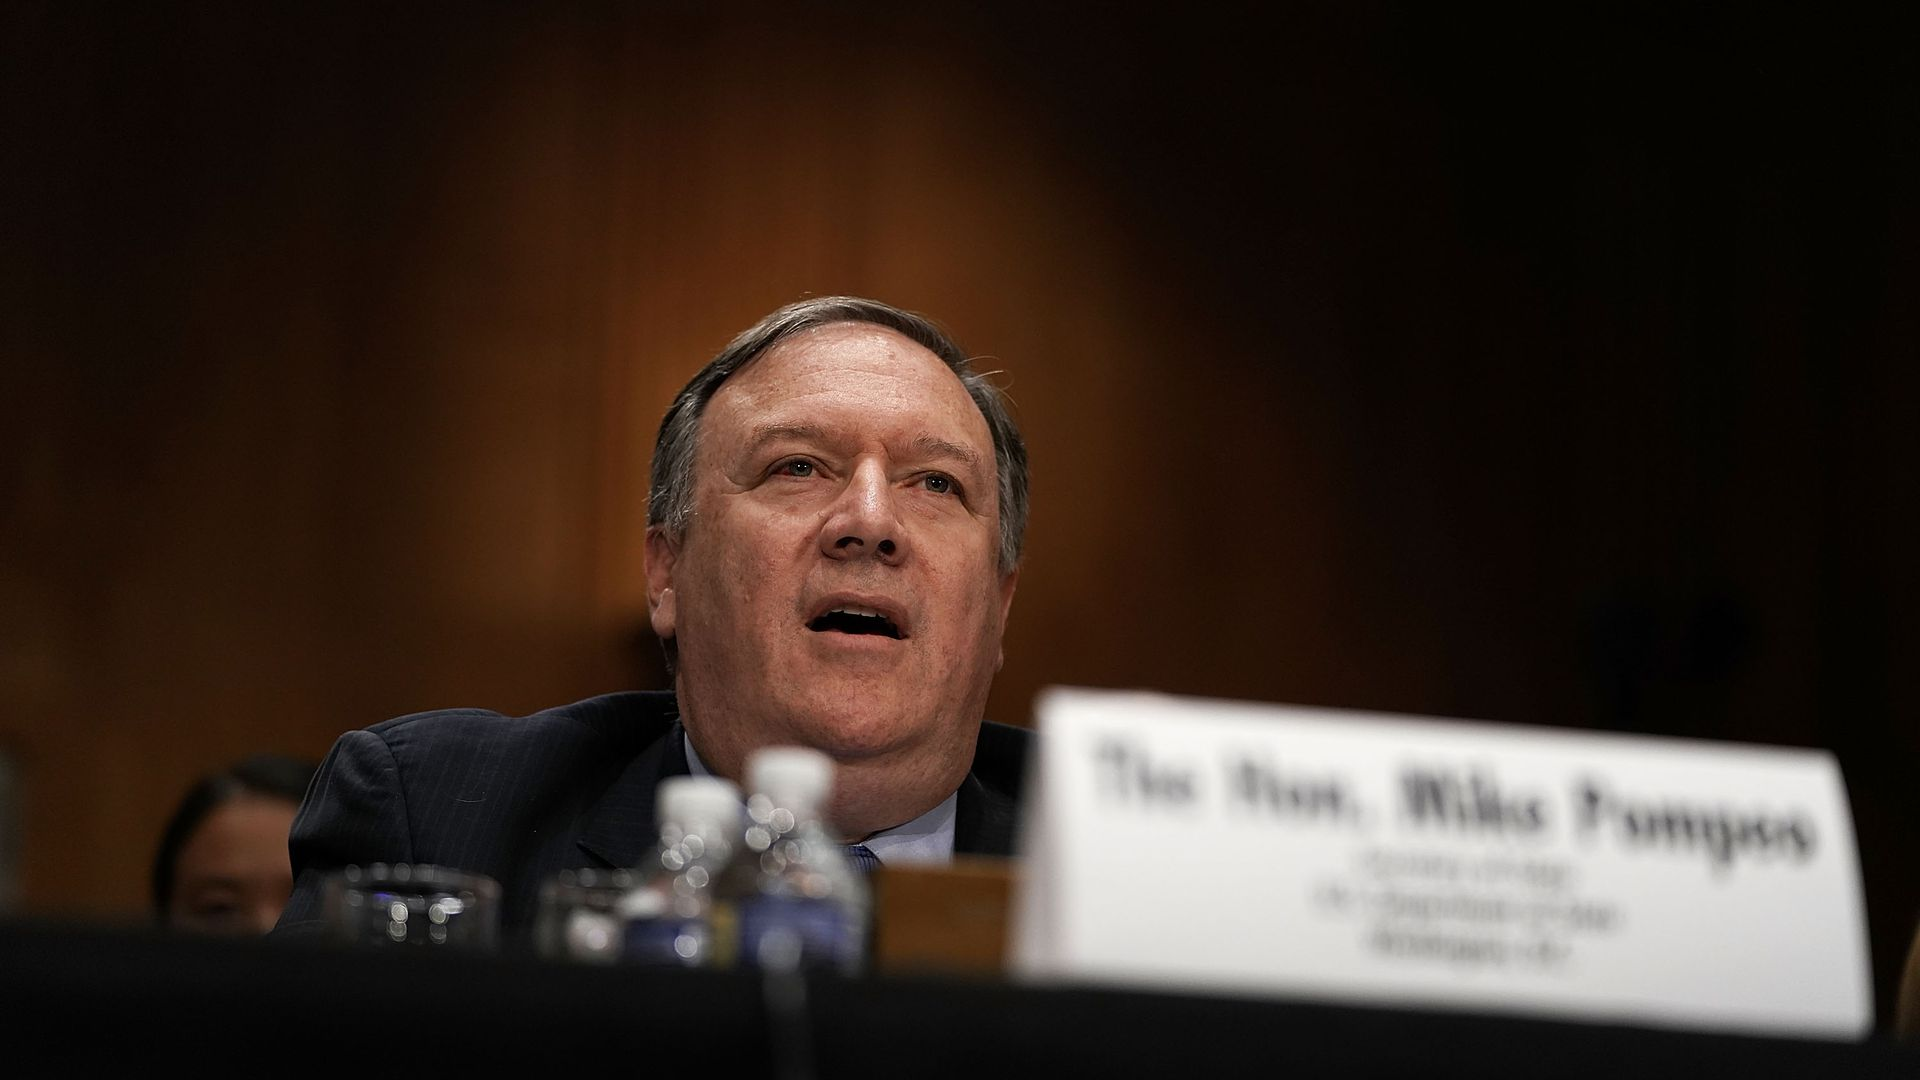 Secretary of State Mike Pompeo during a Senate hearing.